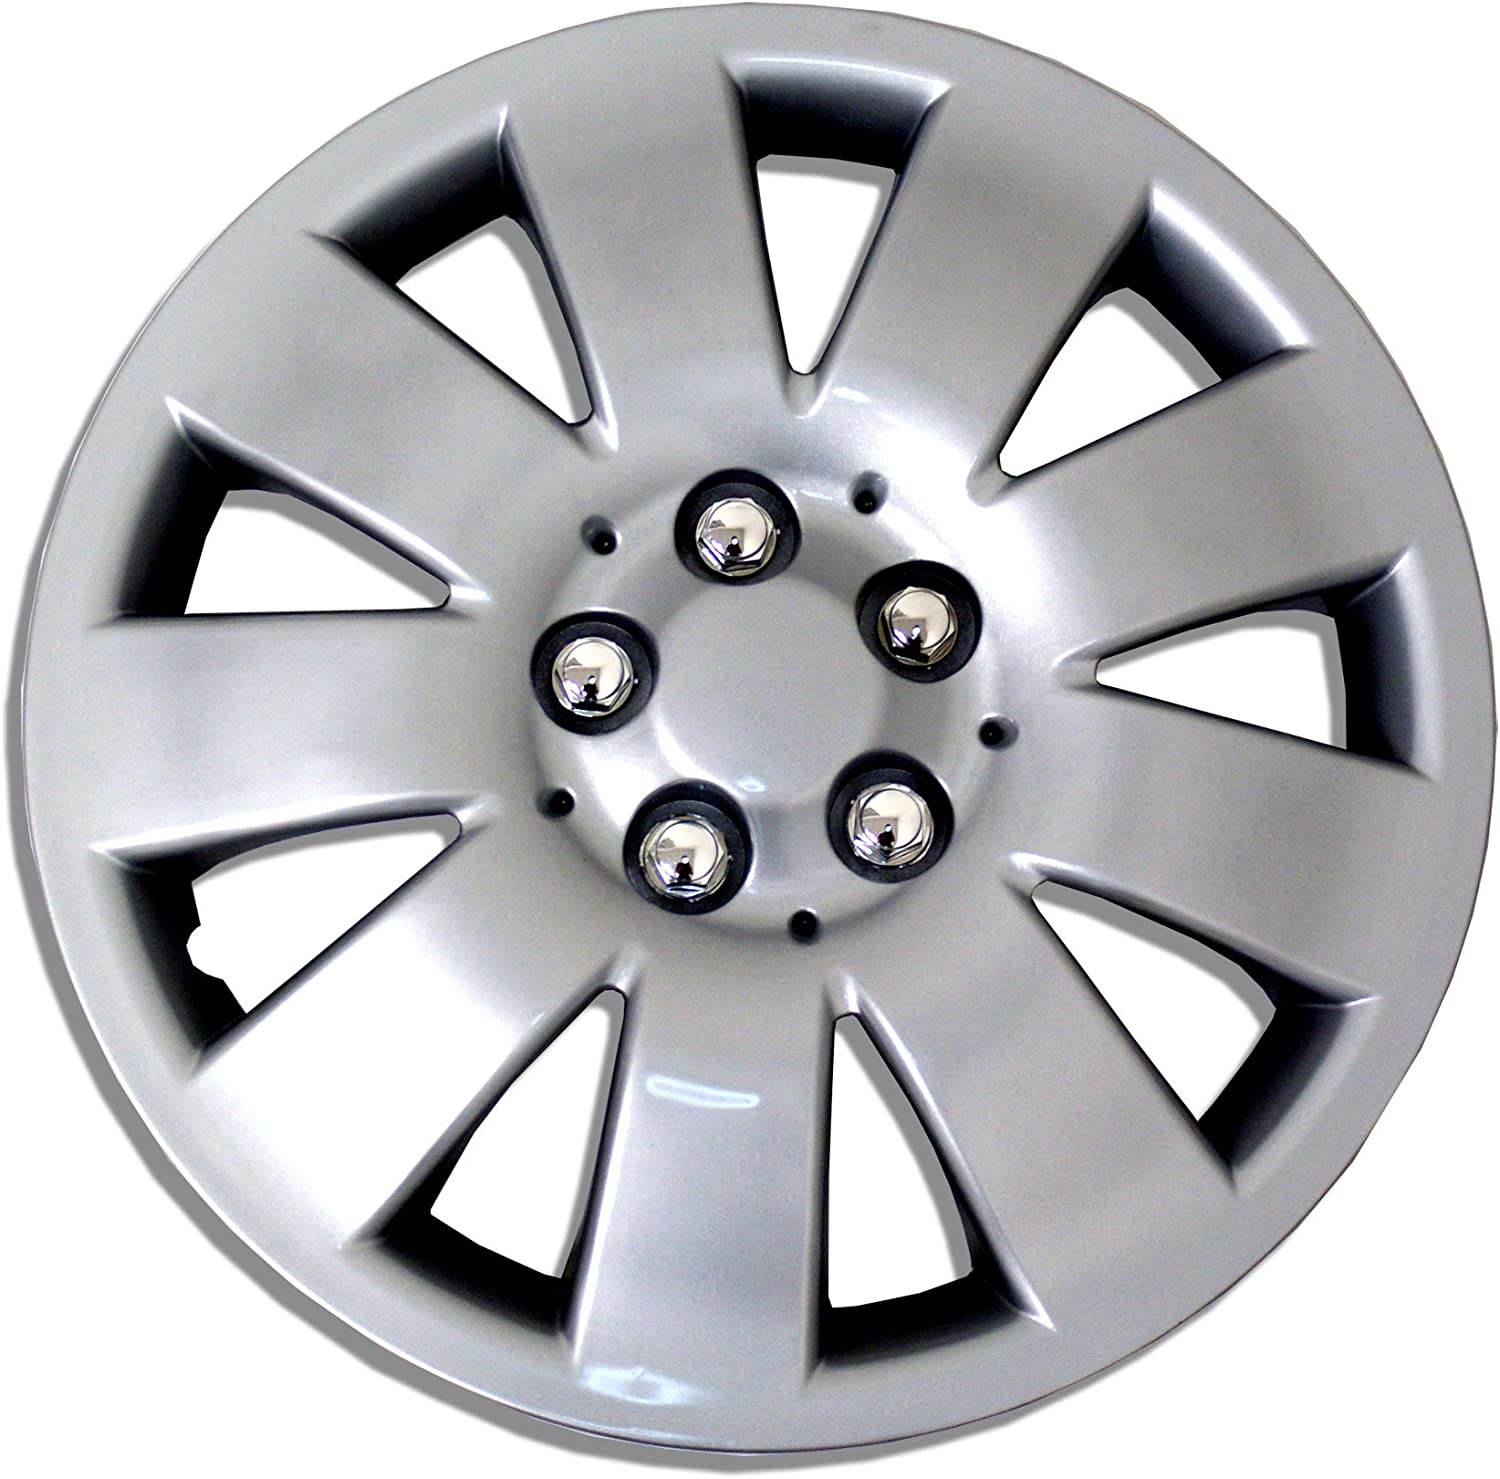 Tuningpros WC1P-15-721-S - Pack of 1 Hubcap (1 Piece) - 15-Inches Style Snap-On (Pop-On) Type Metallic Silver Wheel Covers Hub-caps